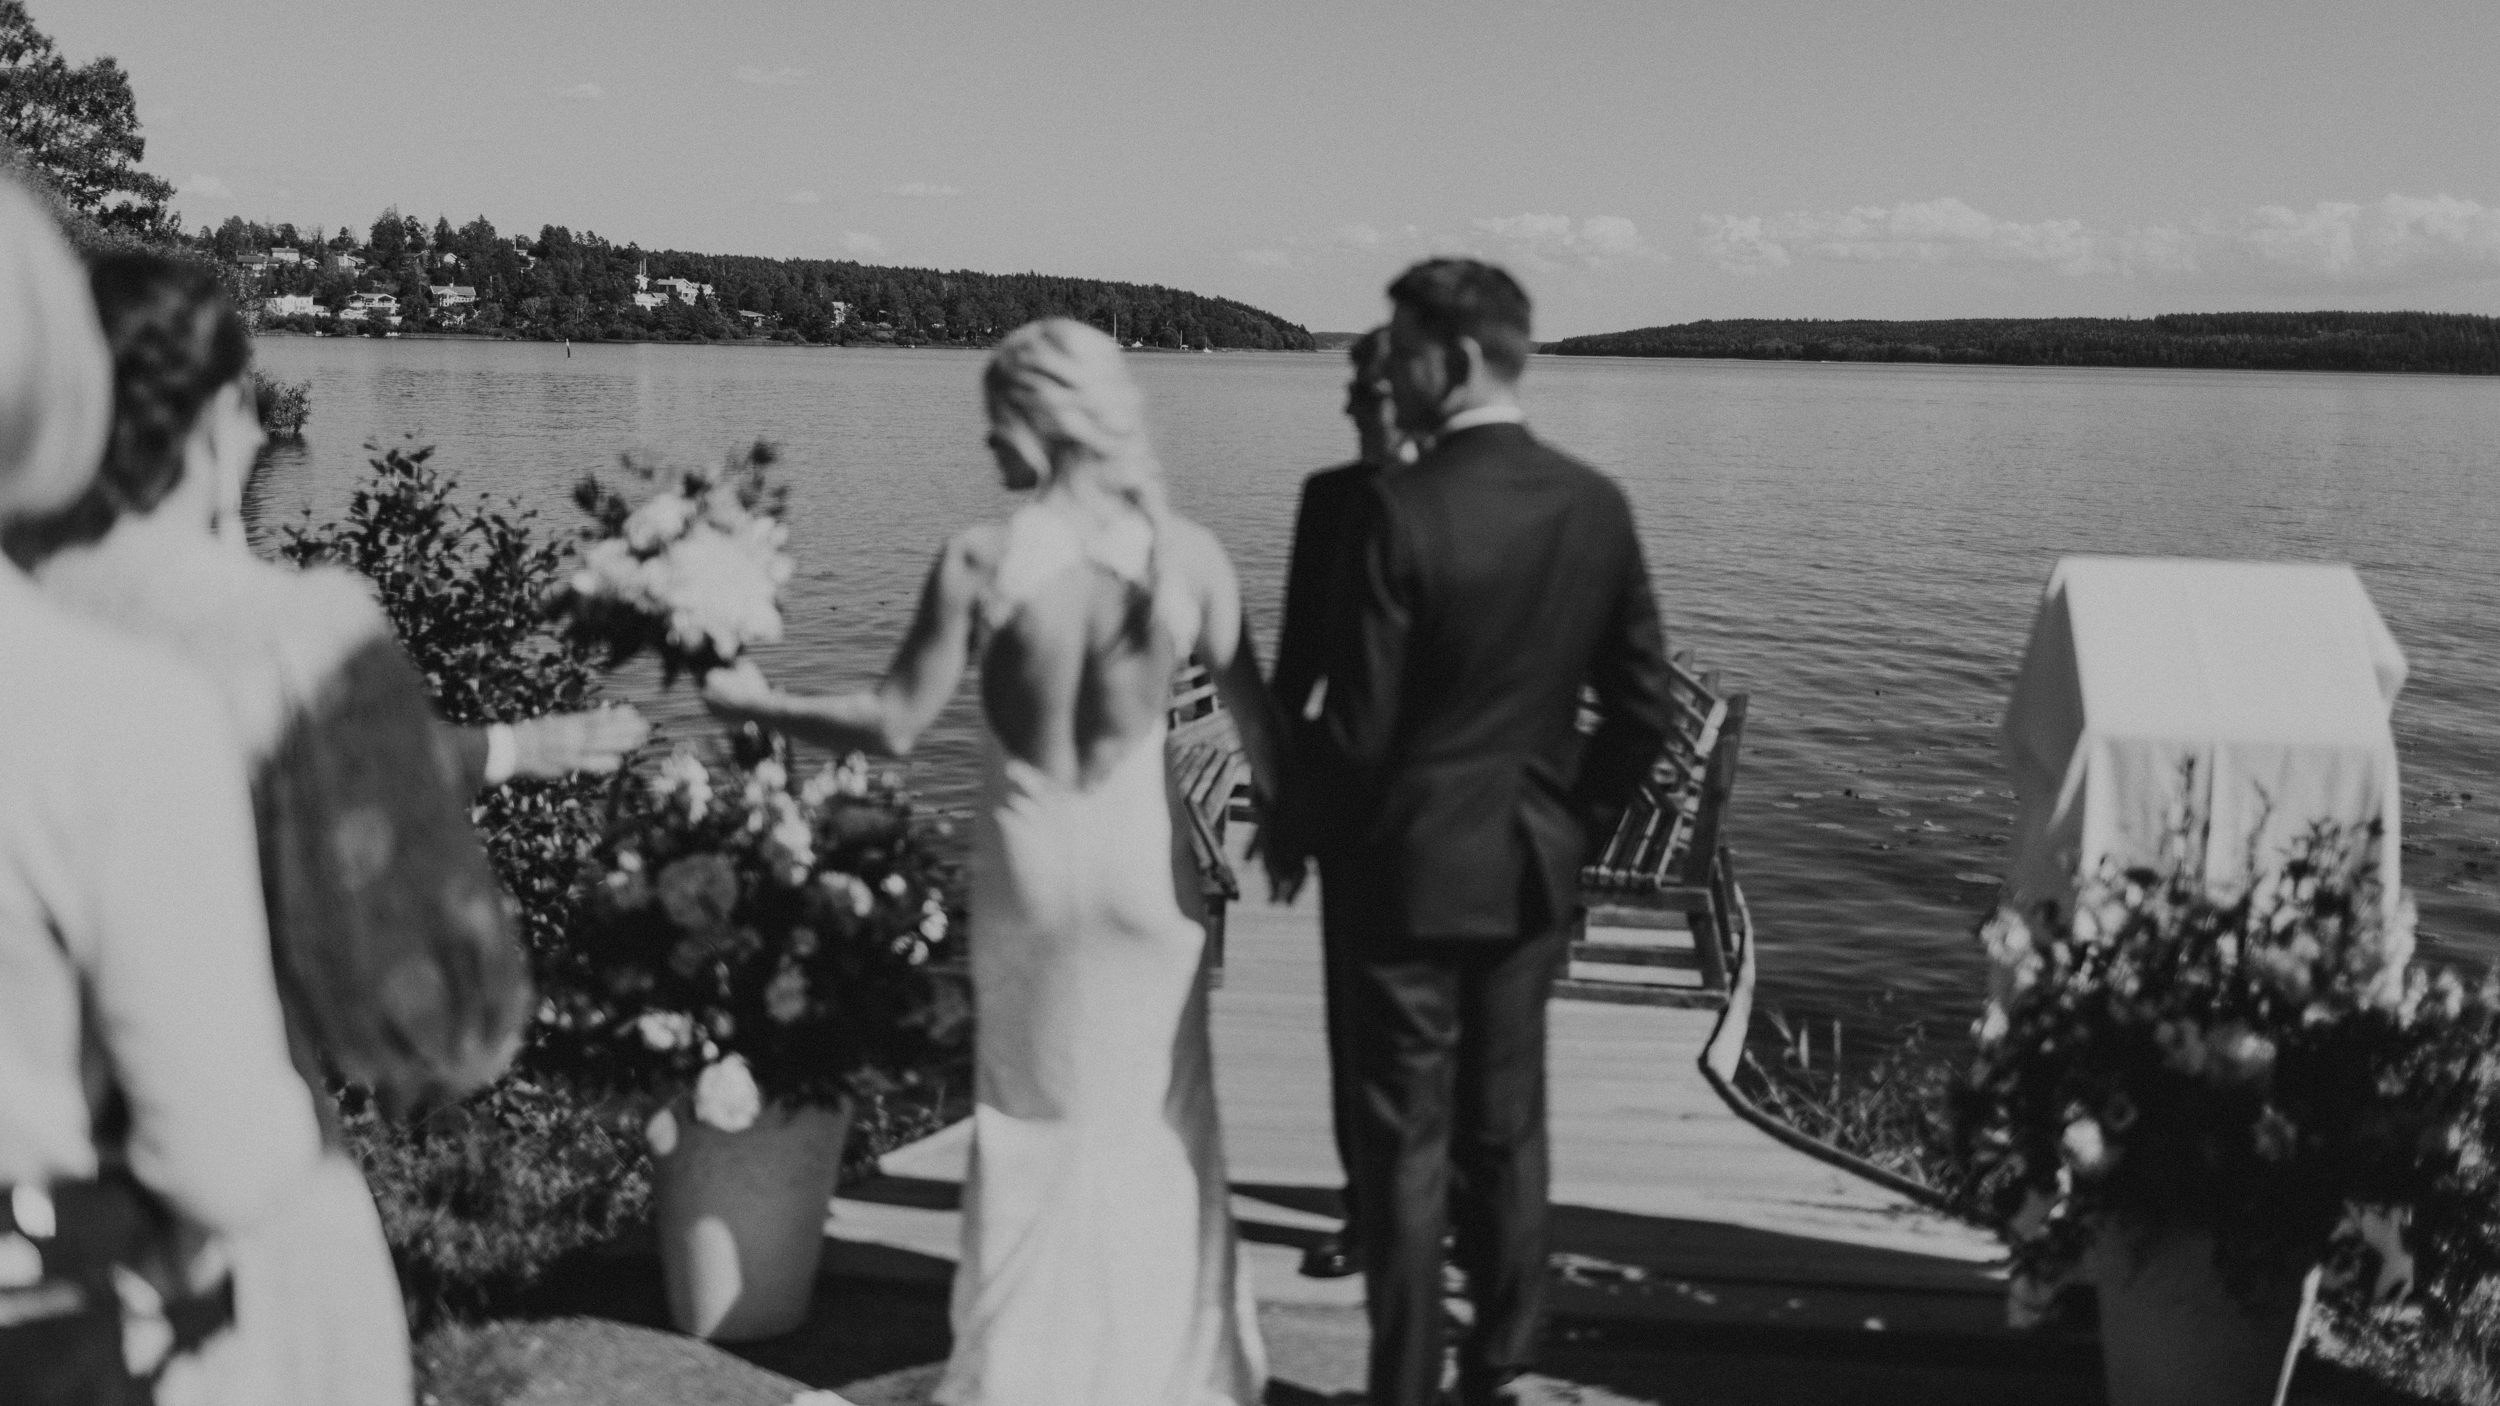 sigtuna-sweden-wedding_m_e-73.jpg